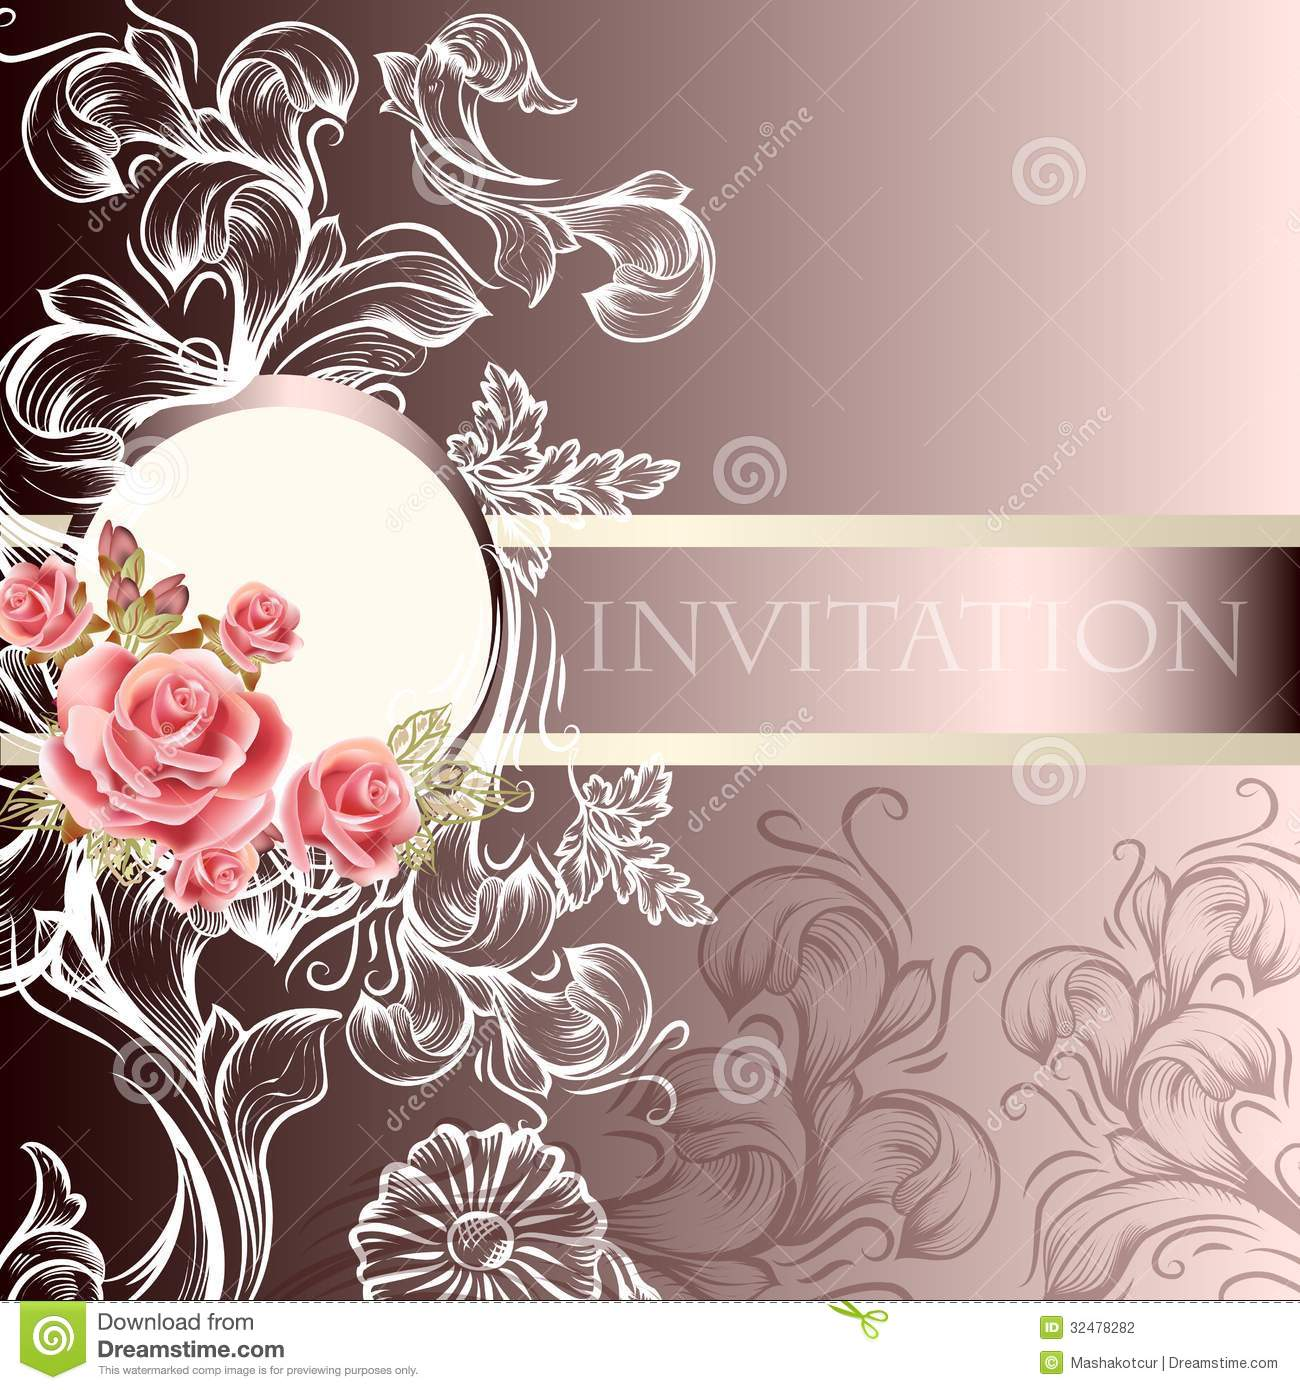 Come Again Sweet Love Doth Now Invite with adorable invitations design